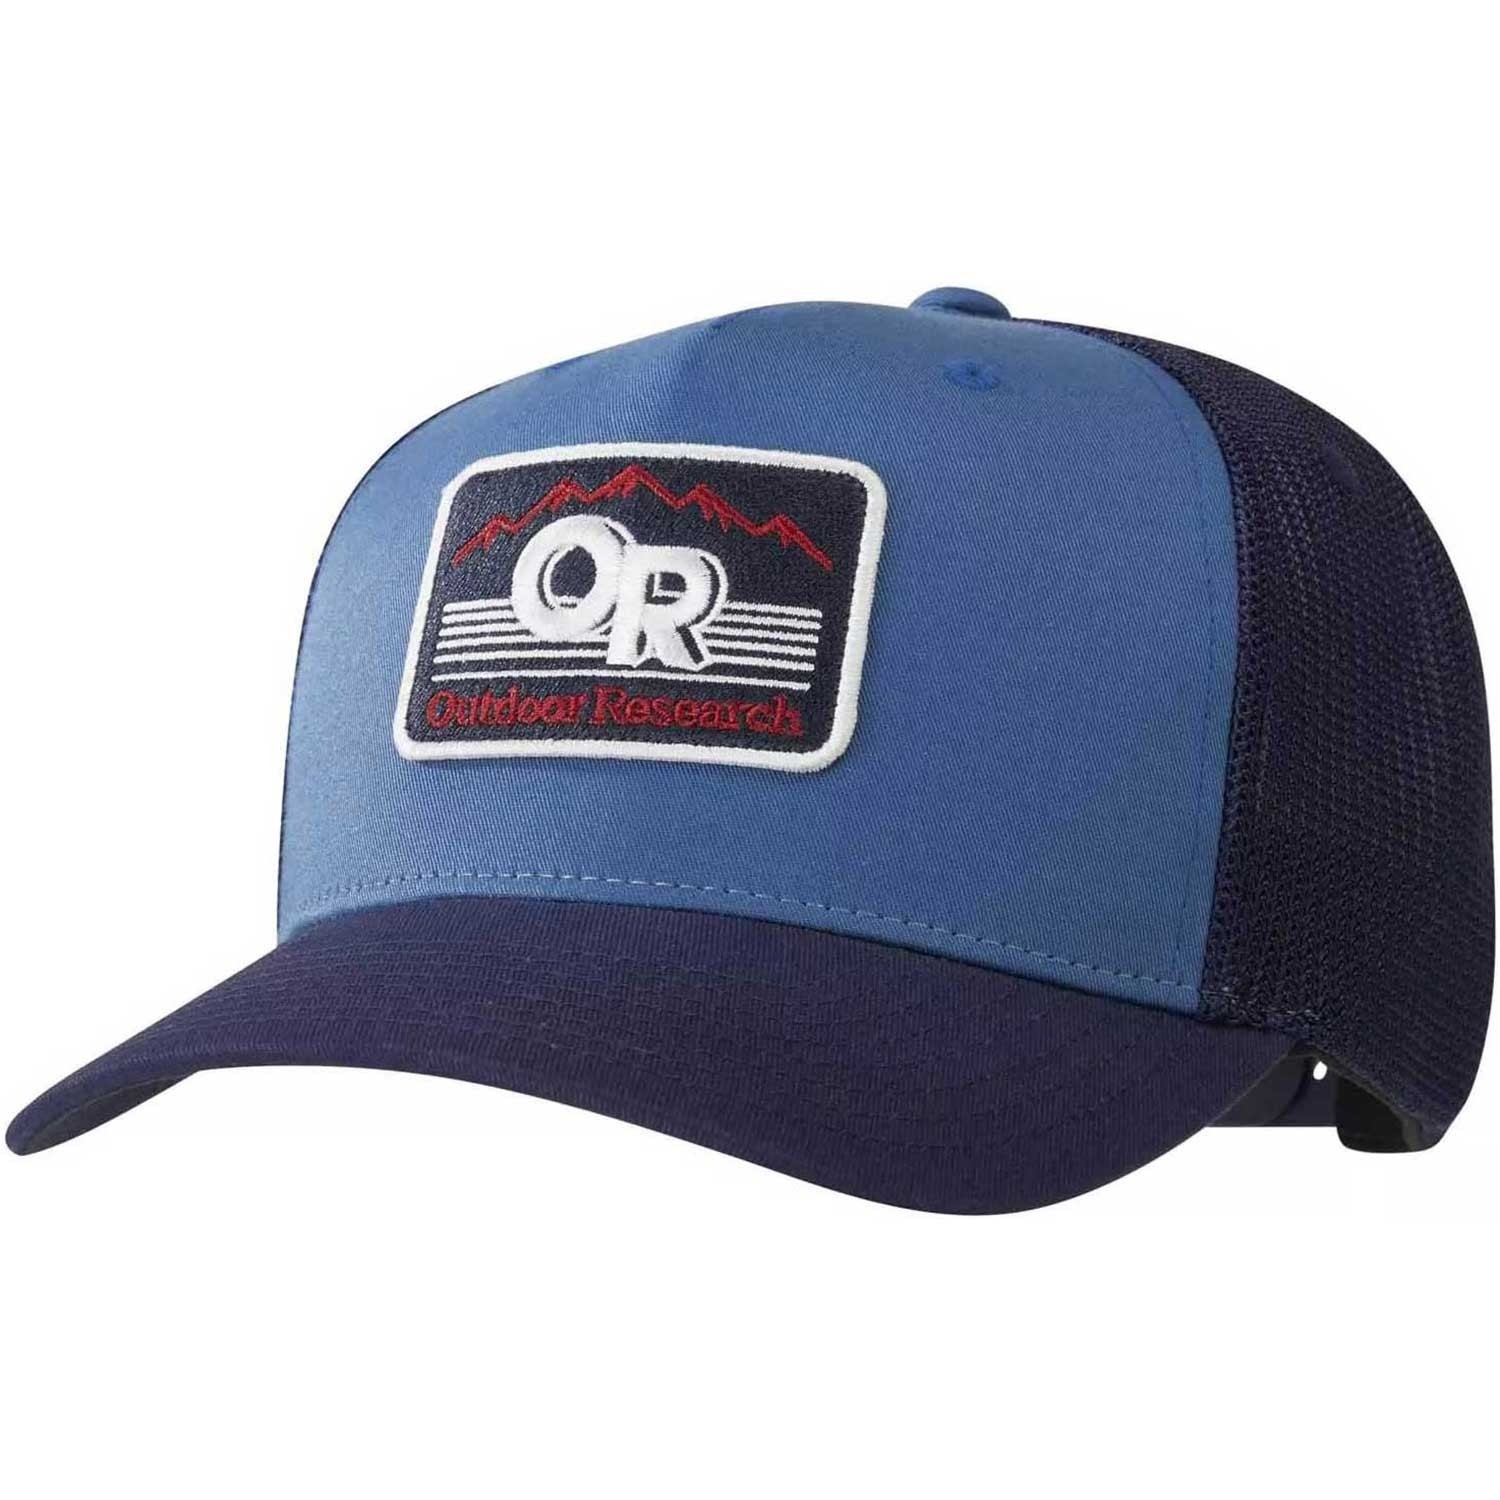 Outdoor Research Advocate Cap - Chambray